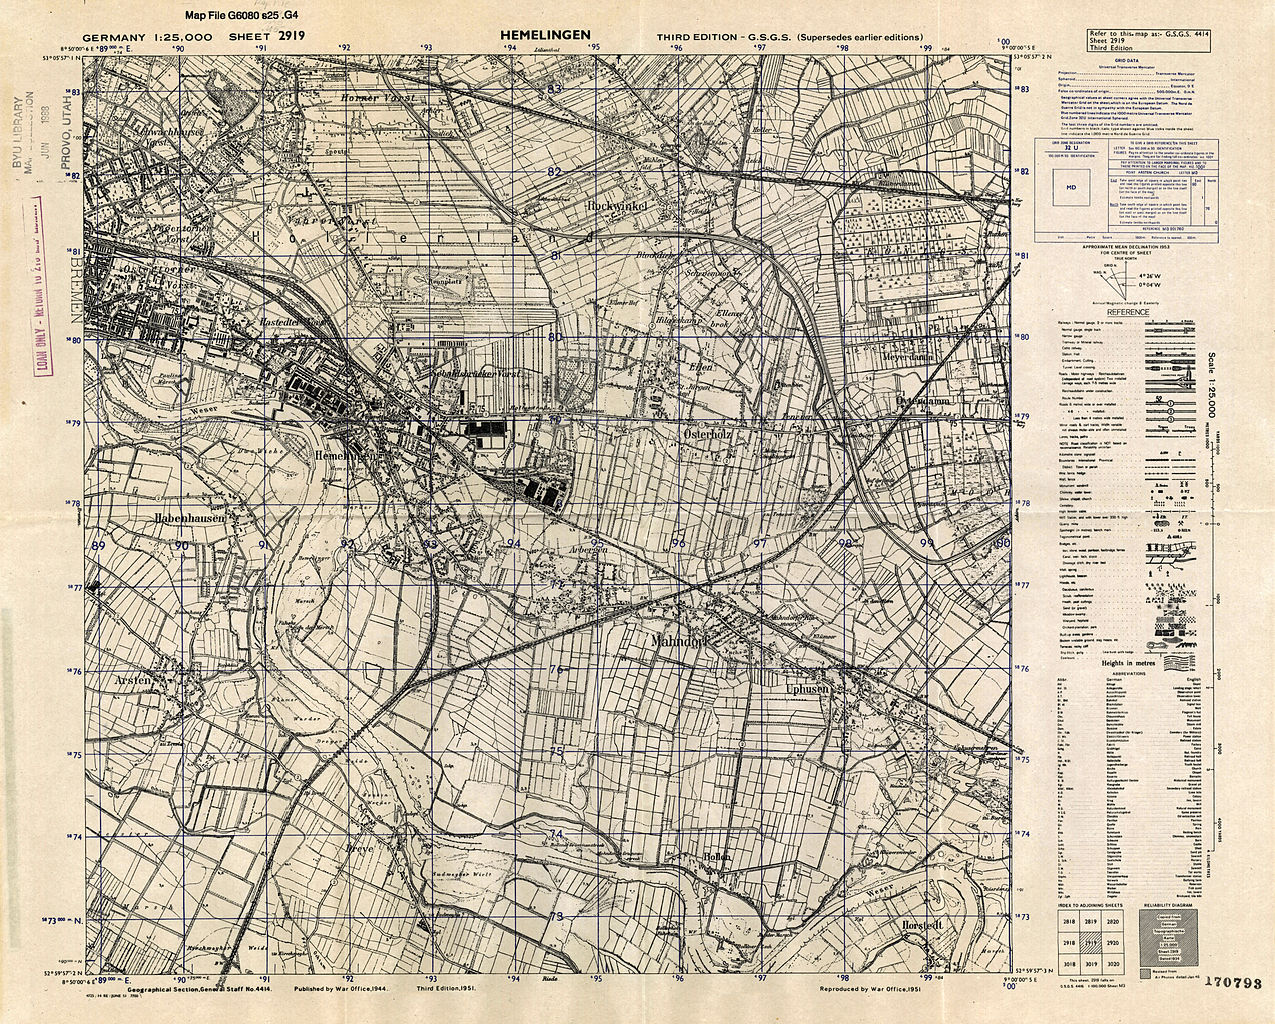 Filemap of pre world war ii germany tk25 hemelingen 2919g filemap of pre world war ii germany tk25 hemelingen 2919g gumiabroncs Image collections